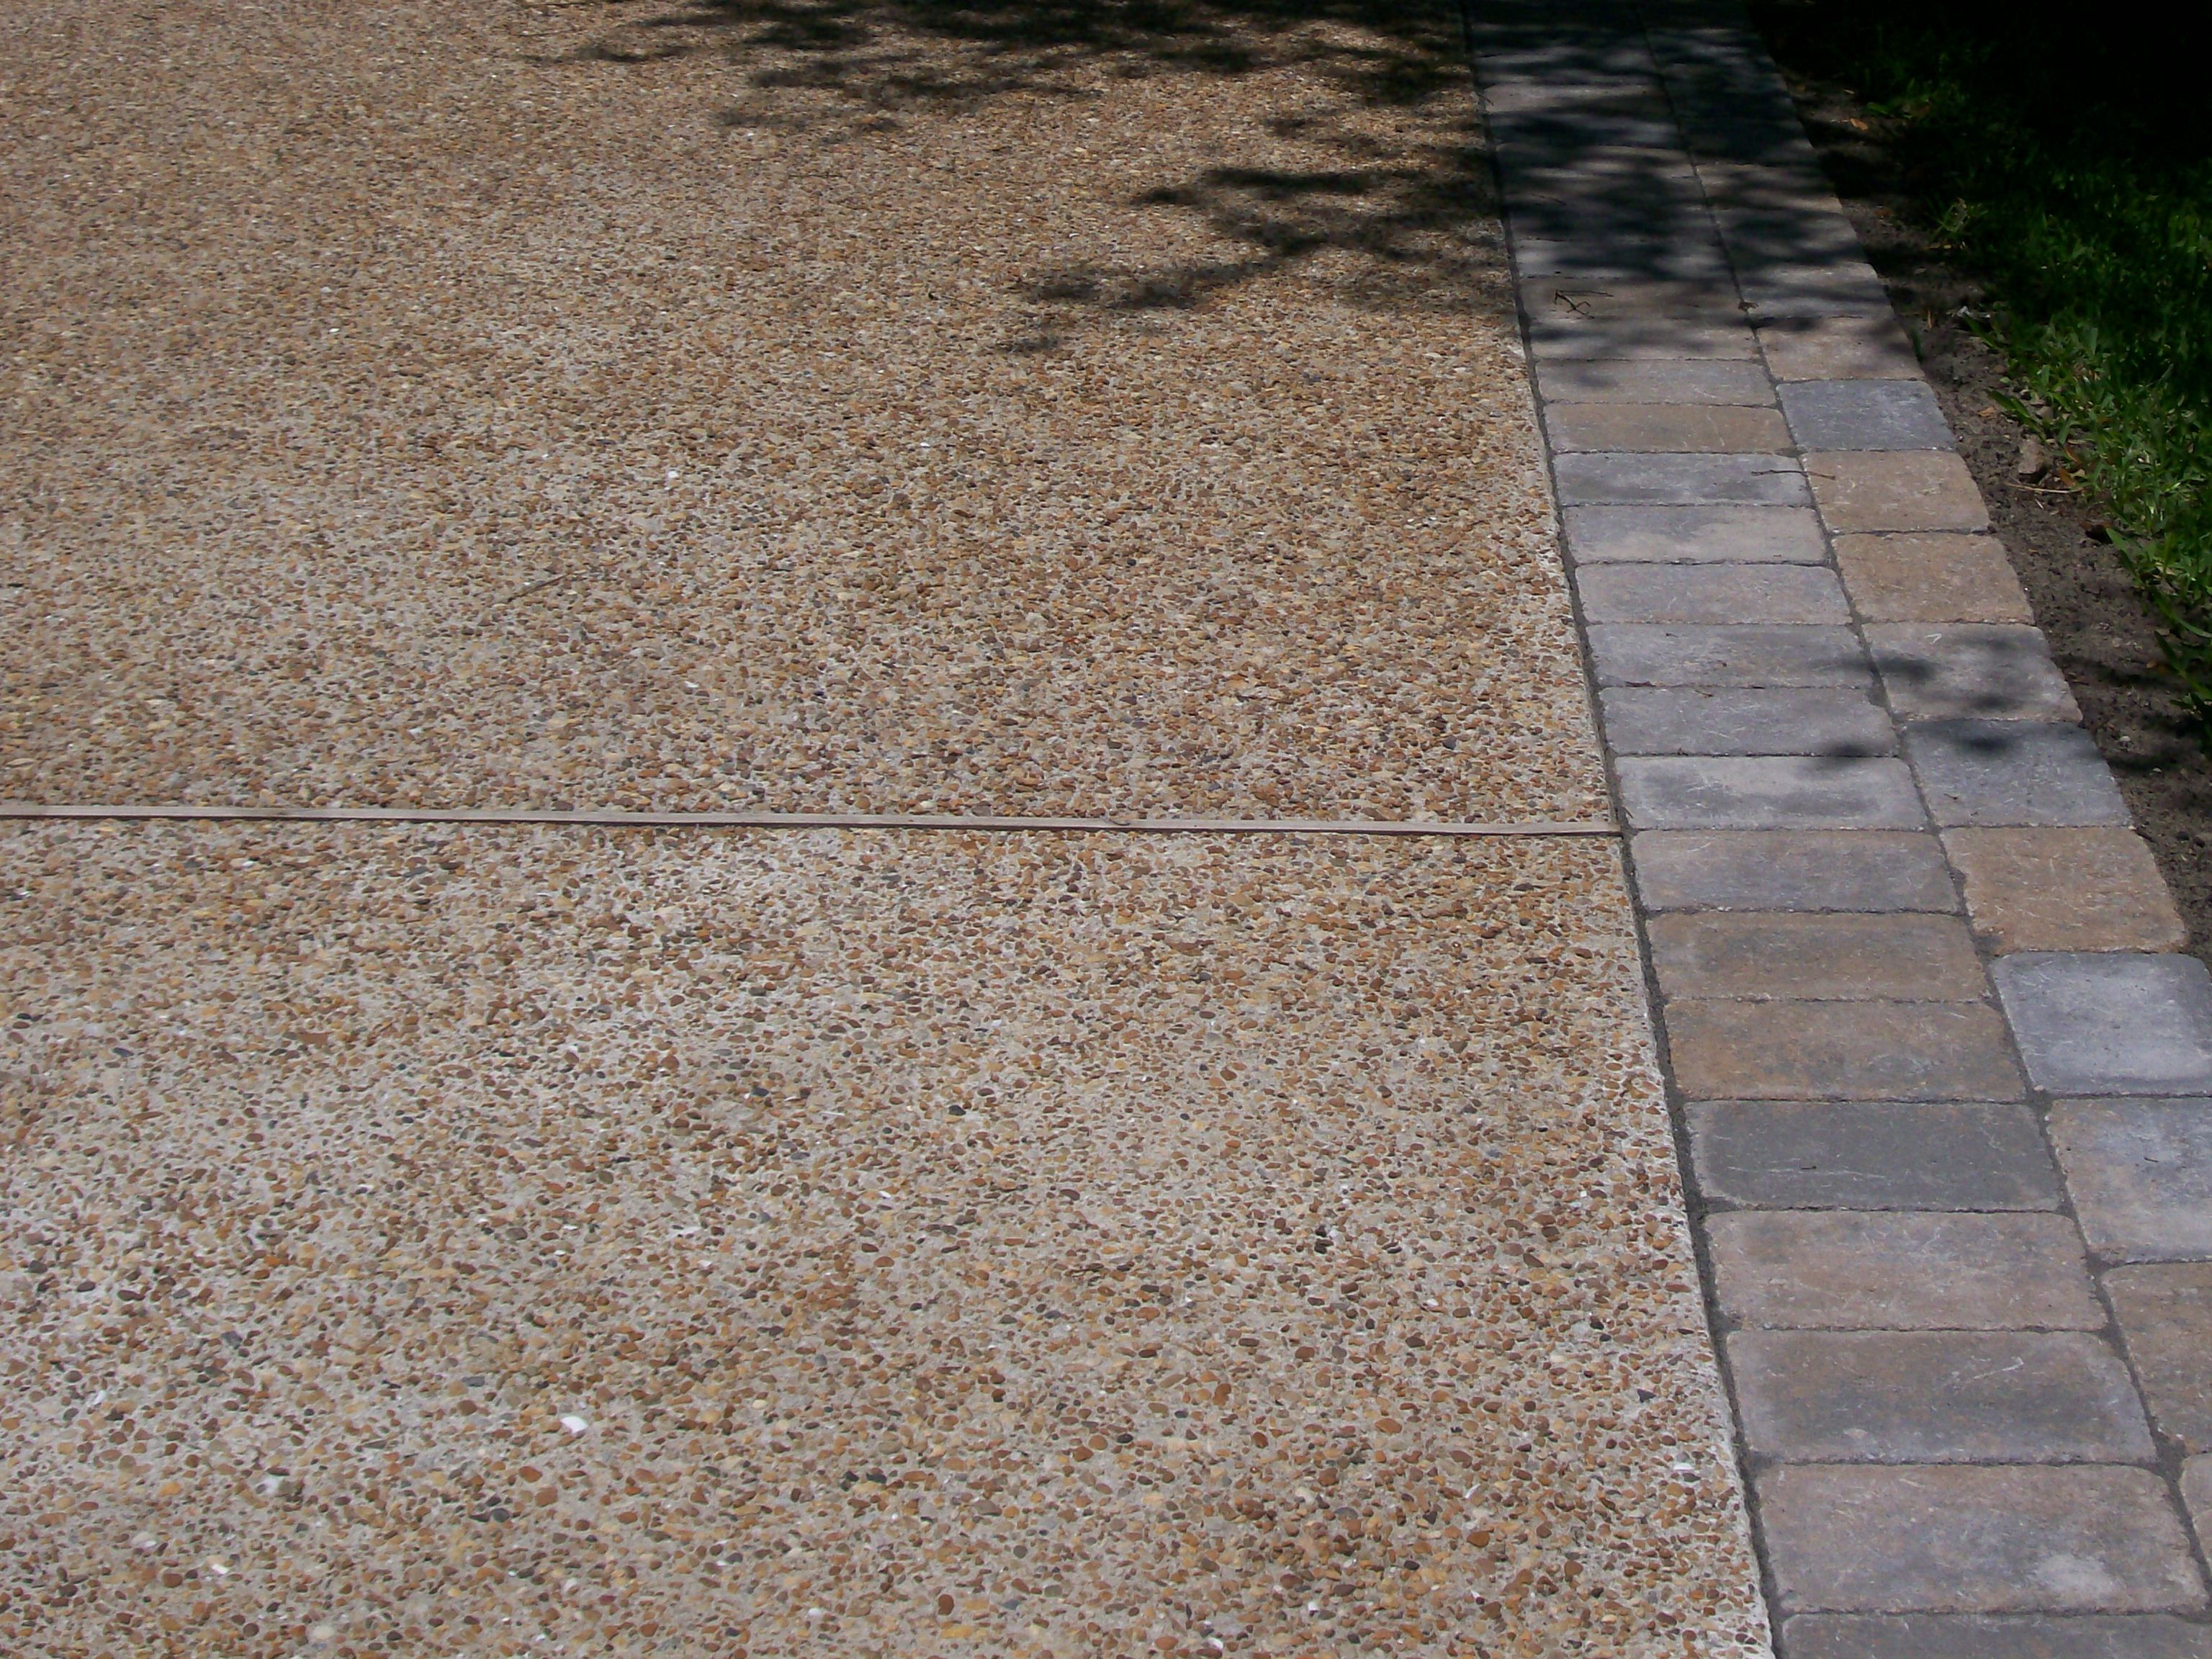 Exposed Aggregate Driveway With Paver Borders Aggregate Driveway Exposed Aggregate Driveway Exposed Aggregate Concrete